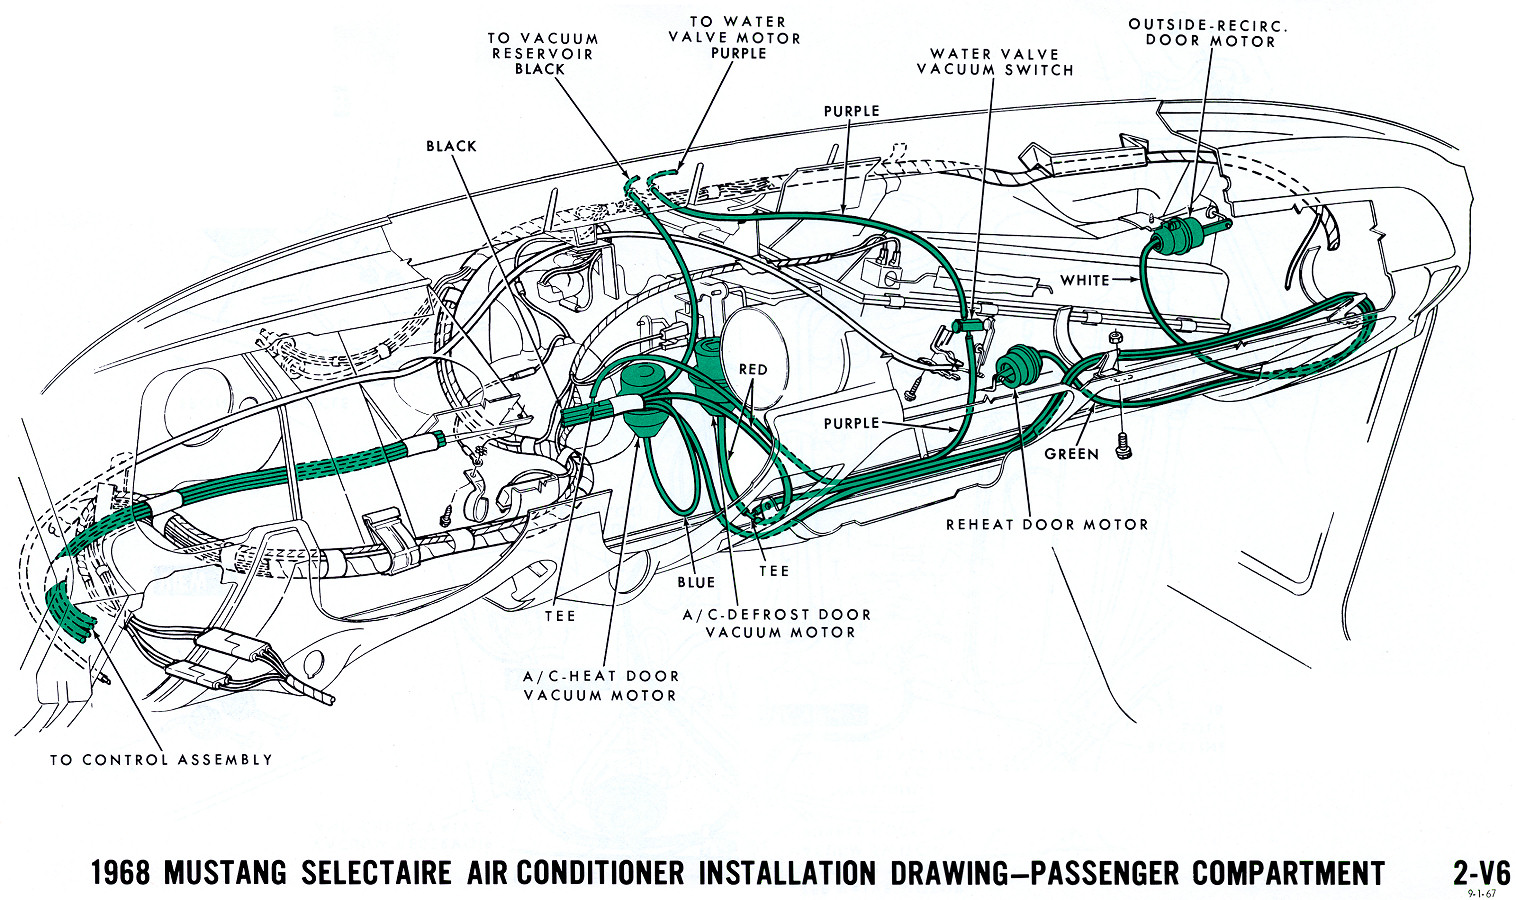 70 Gto Wiring Diagram Opinions About 1972 Pontiac Ac 1968 Mustang Diagrams And Vacuum Schematics Average Joe Restoration 1970 Under Dash Hood Tach